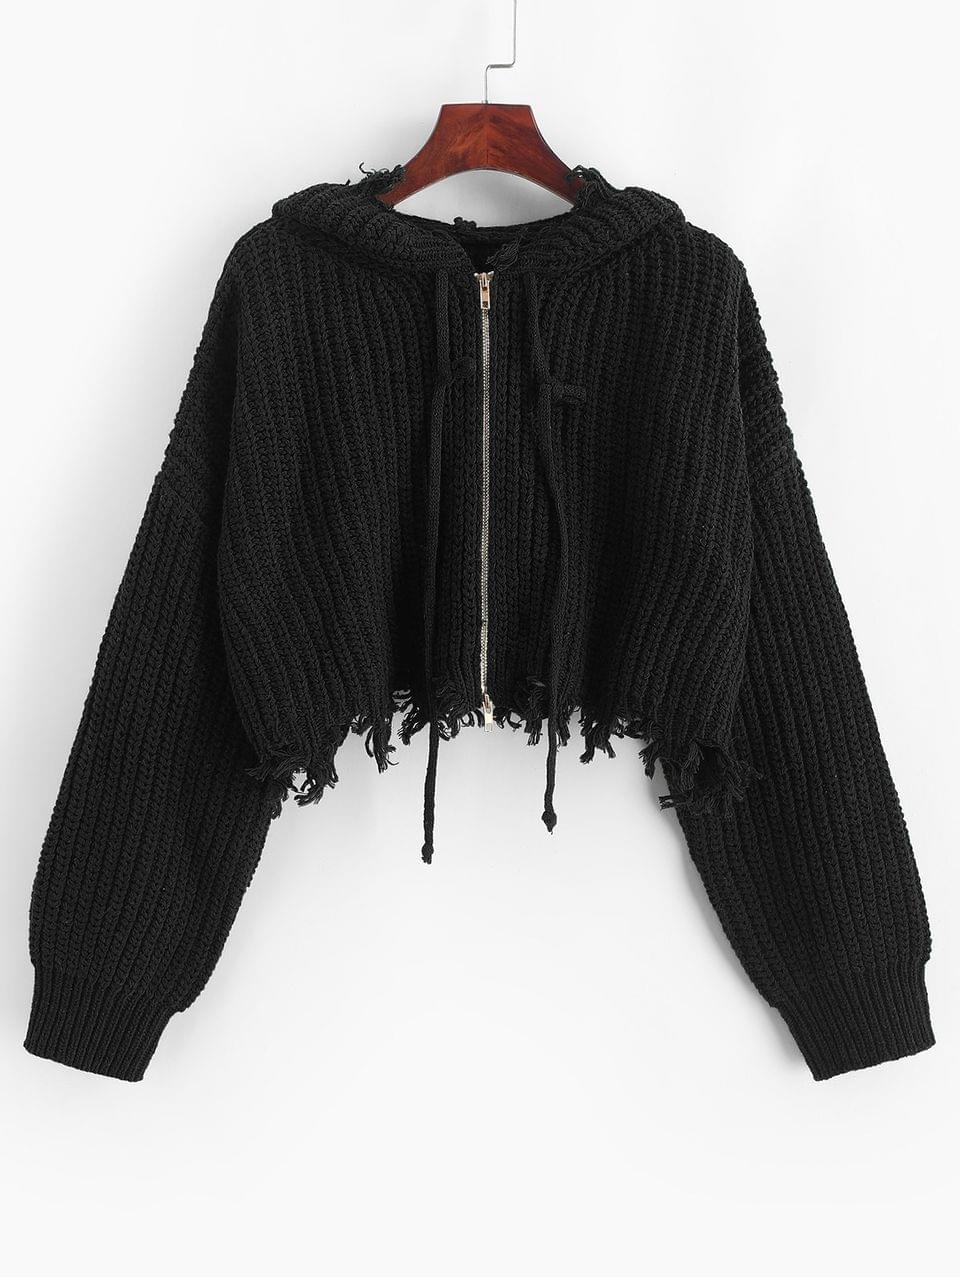 Women's Hooded Zip Up Distressed Cropped Cardigan - Black M